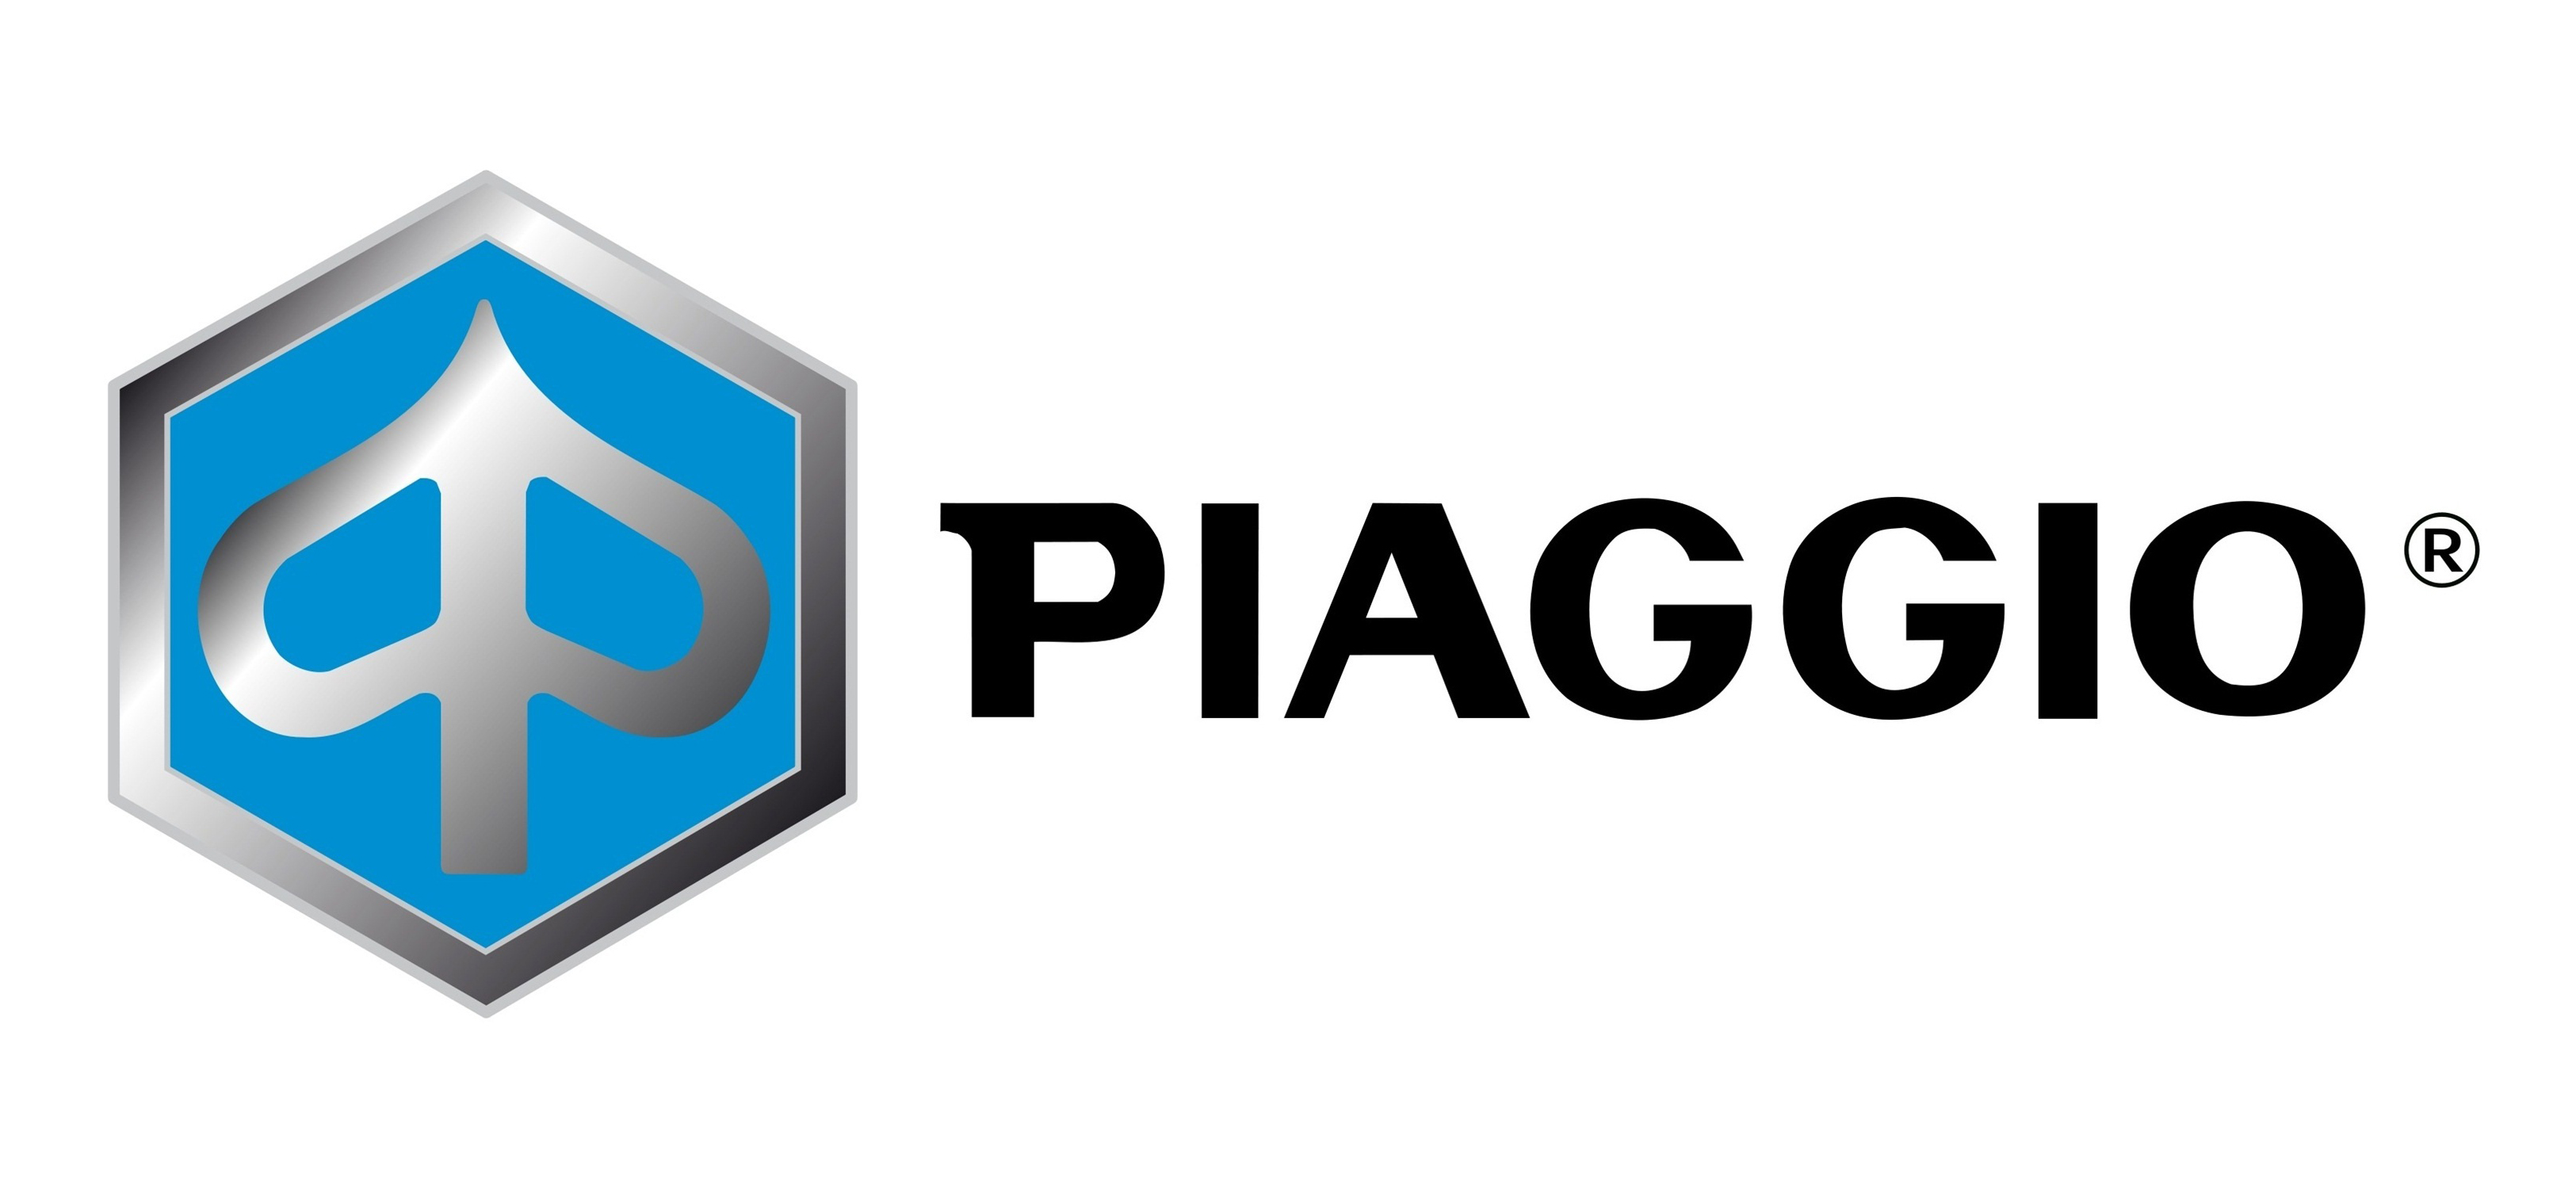 piaggio logo meaning and history latest models world cars brands rh listcarbrands com piaggio logo download piaggio logo download